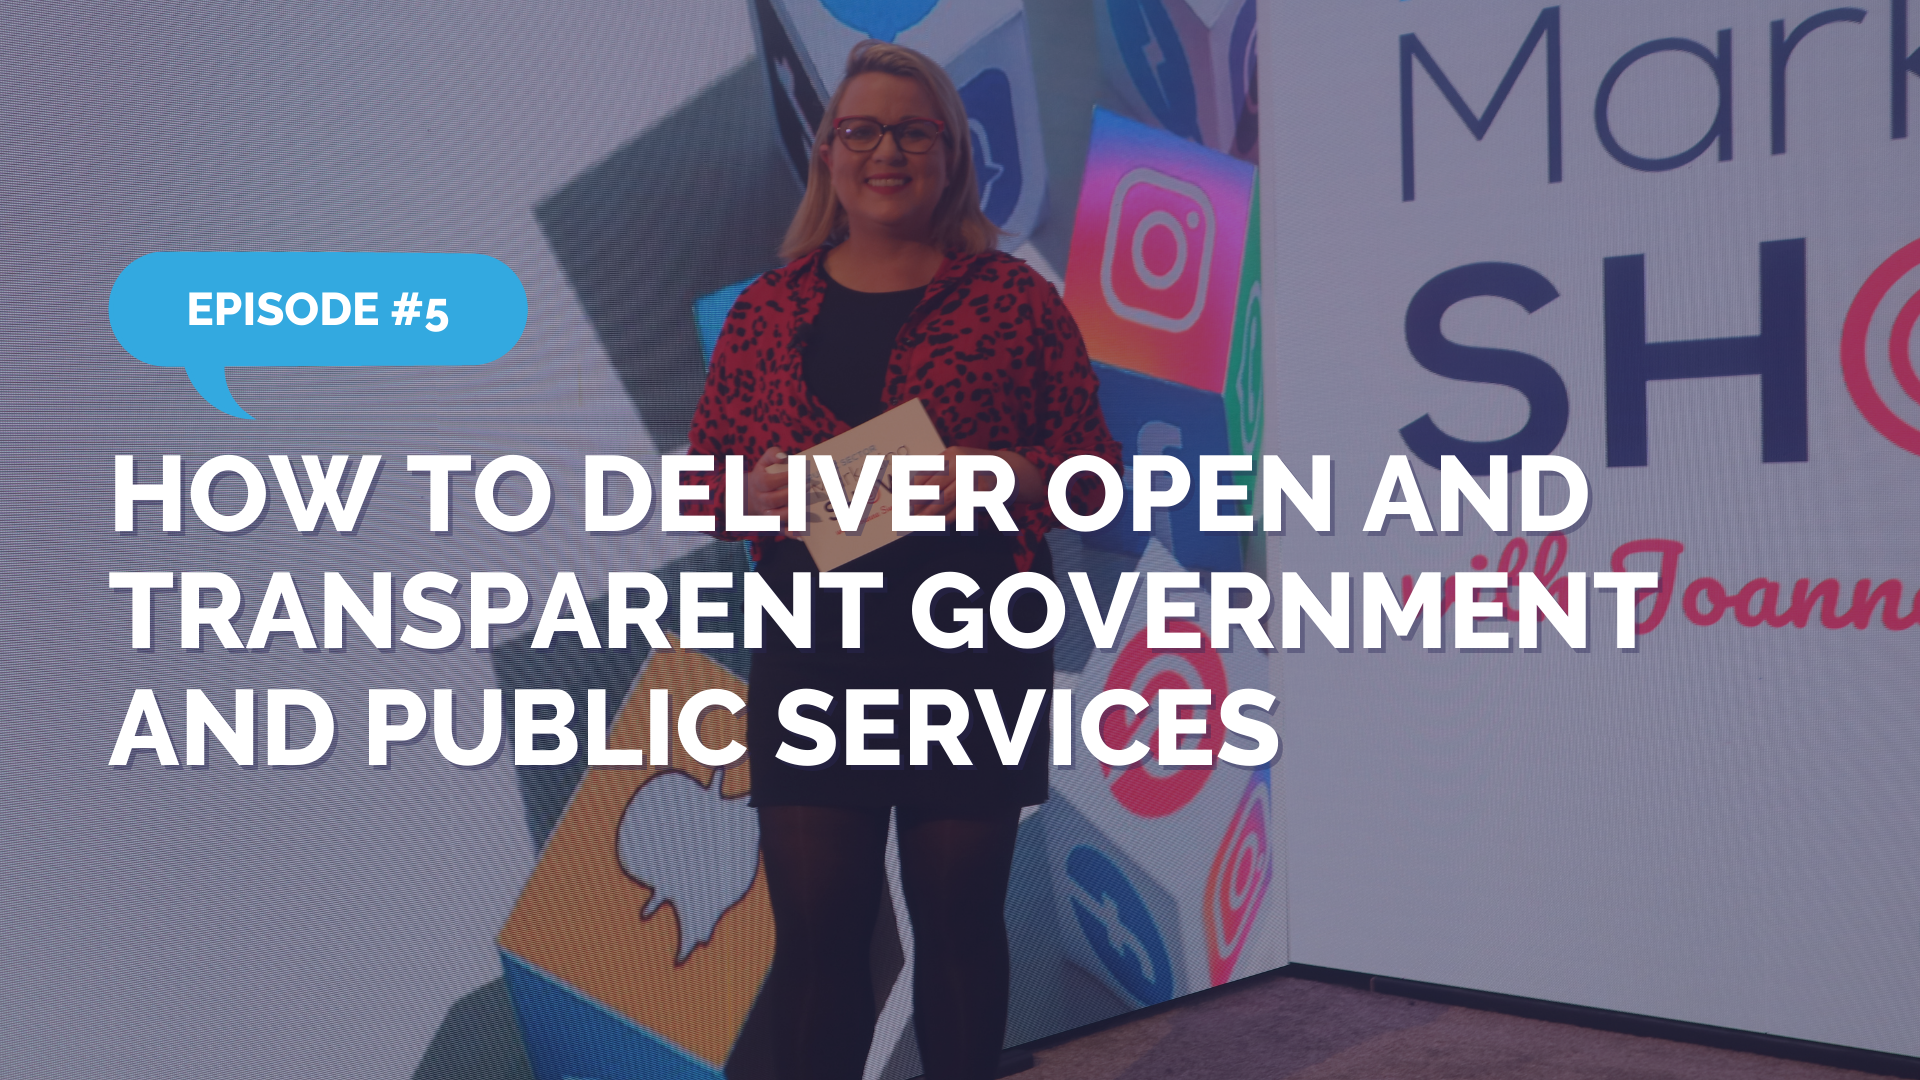 Episode 5 - How to Deliver Open and Transparent Government and Public Services